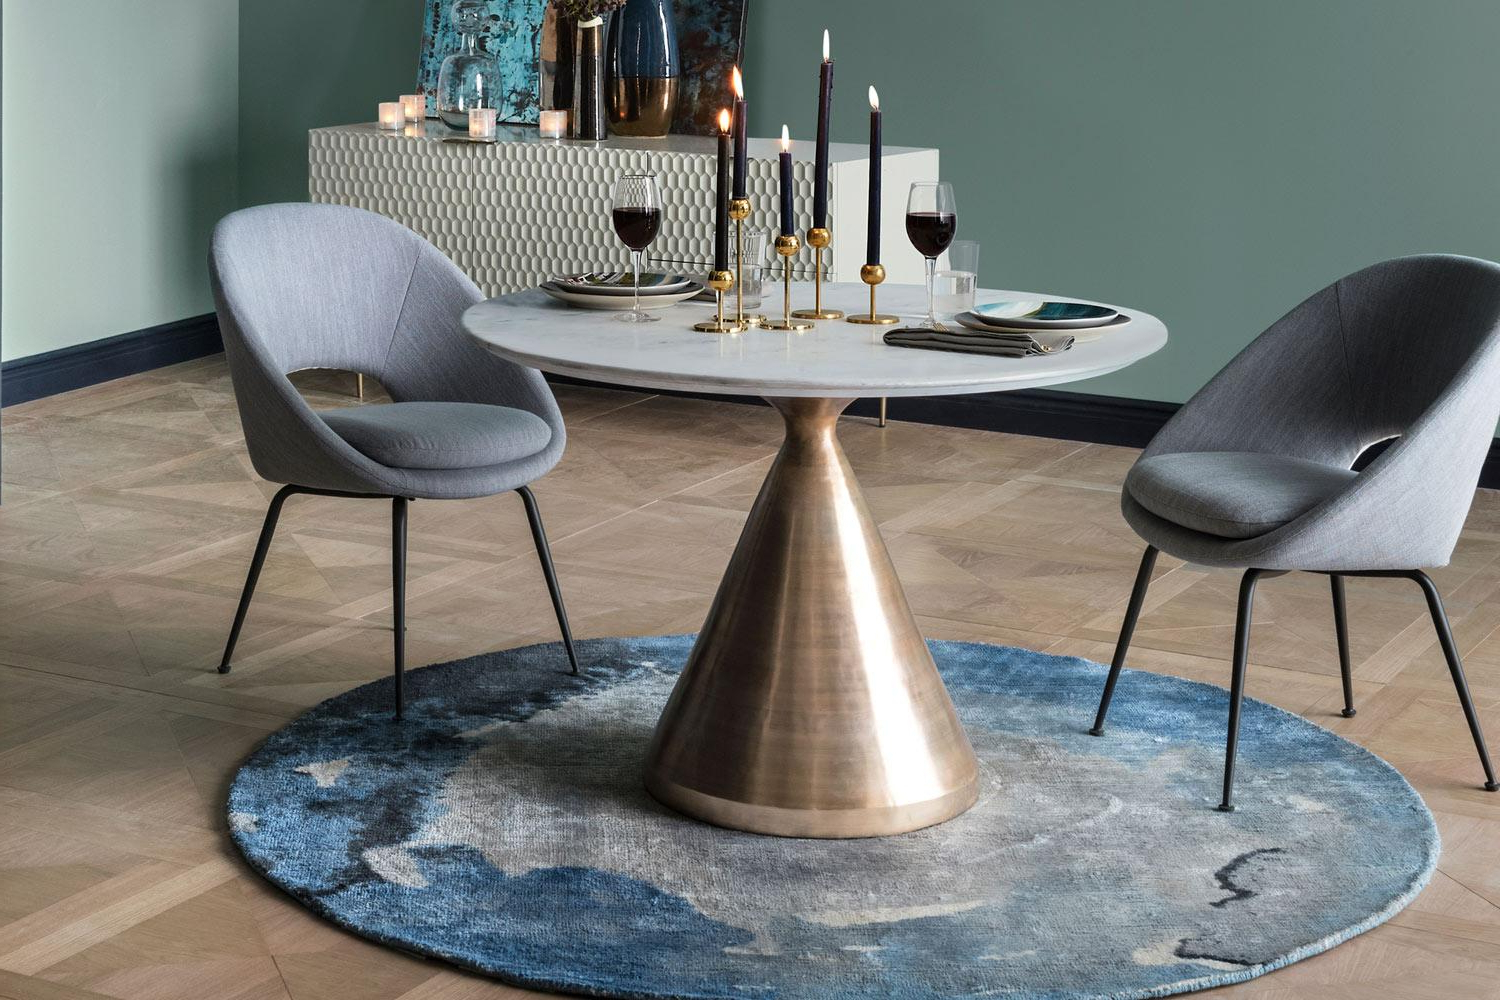 Rustic Mid Century Modern 6 Seating Dining Tables In White And Natural Wood In 2017 Best Dining Tables: The Best Stylish Dining Room Tables (View 22 of 30)